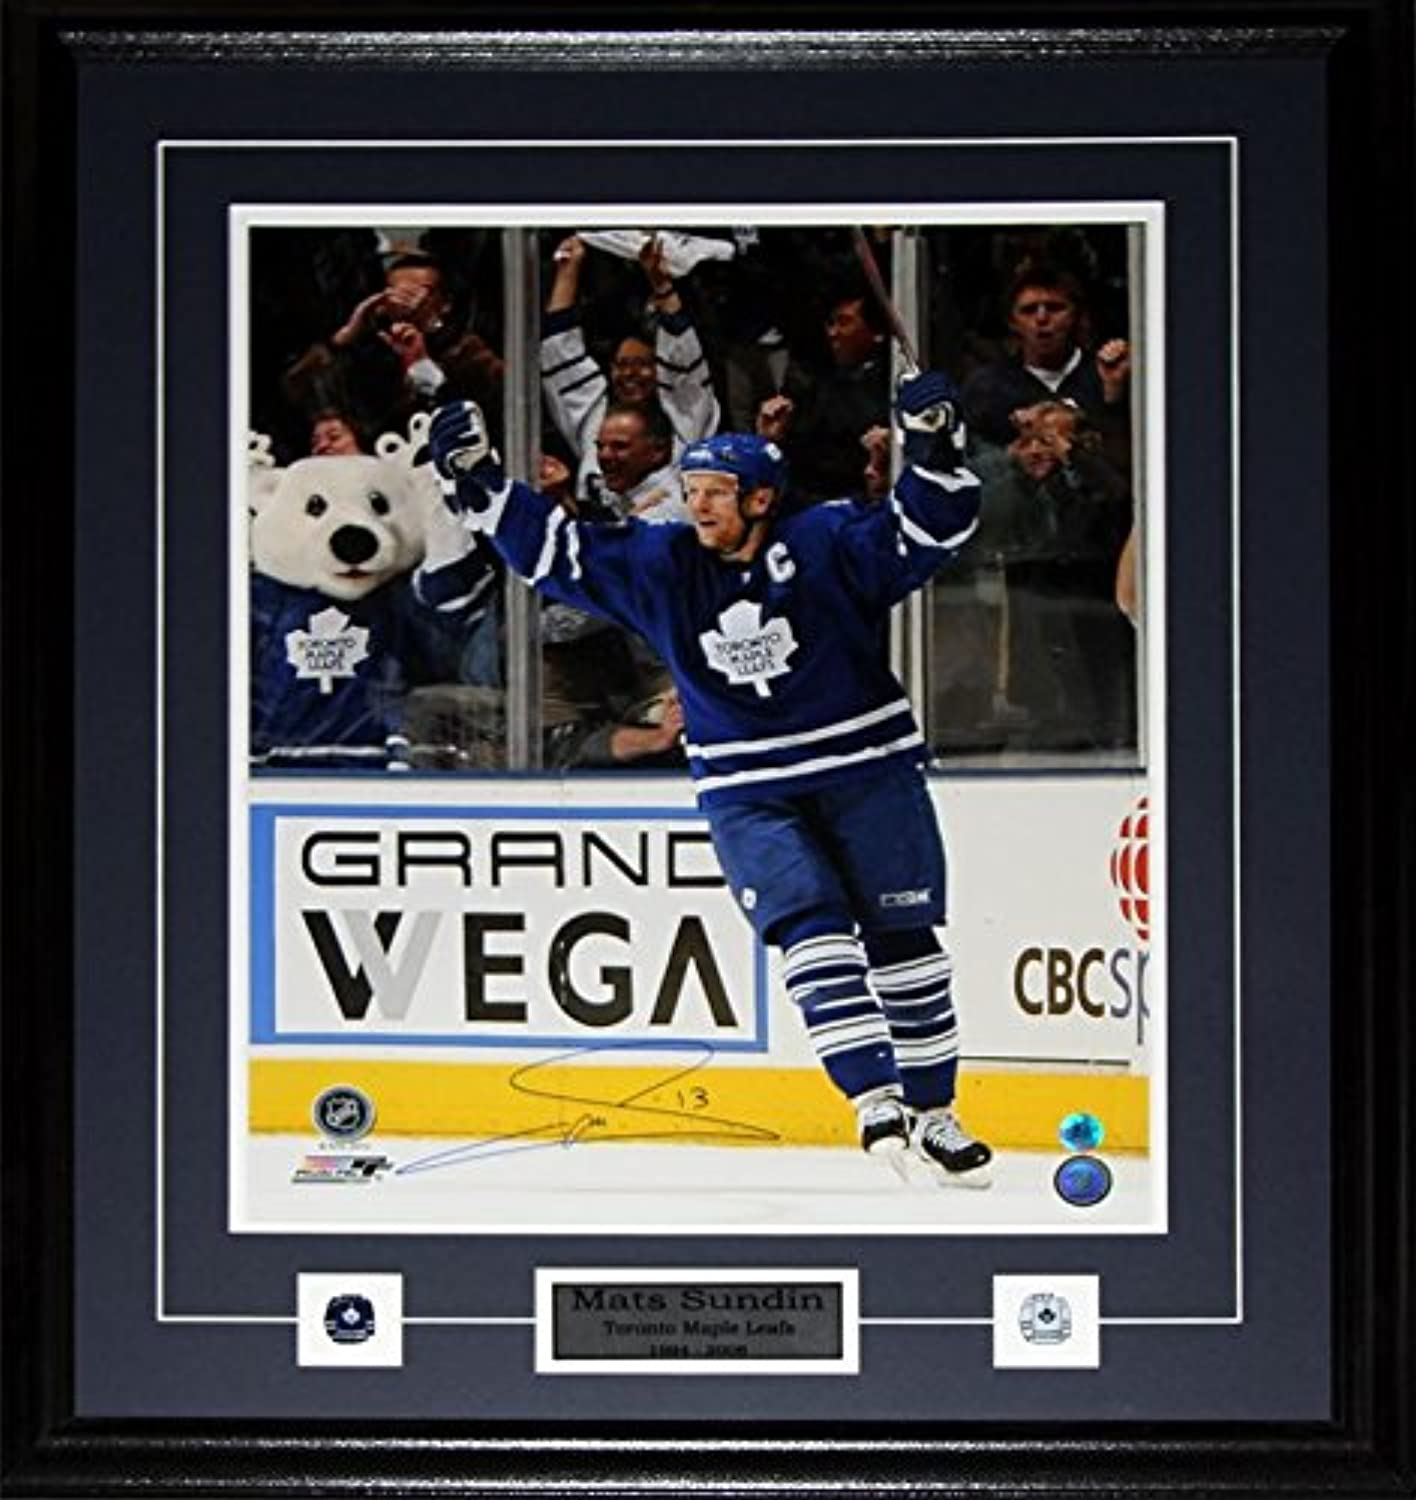 Mats Sundin Tgoldnto Maple Leafs Signed 16x20 NHL Hockey Collector Frame